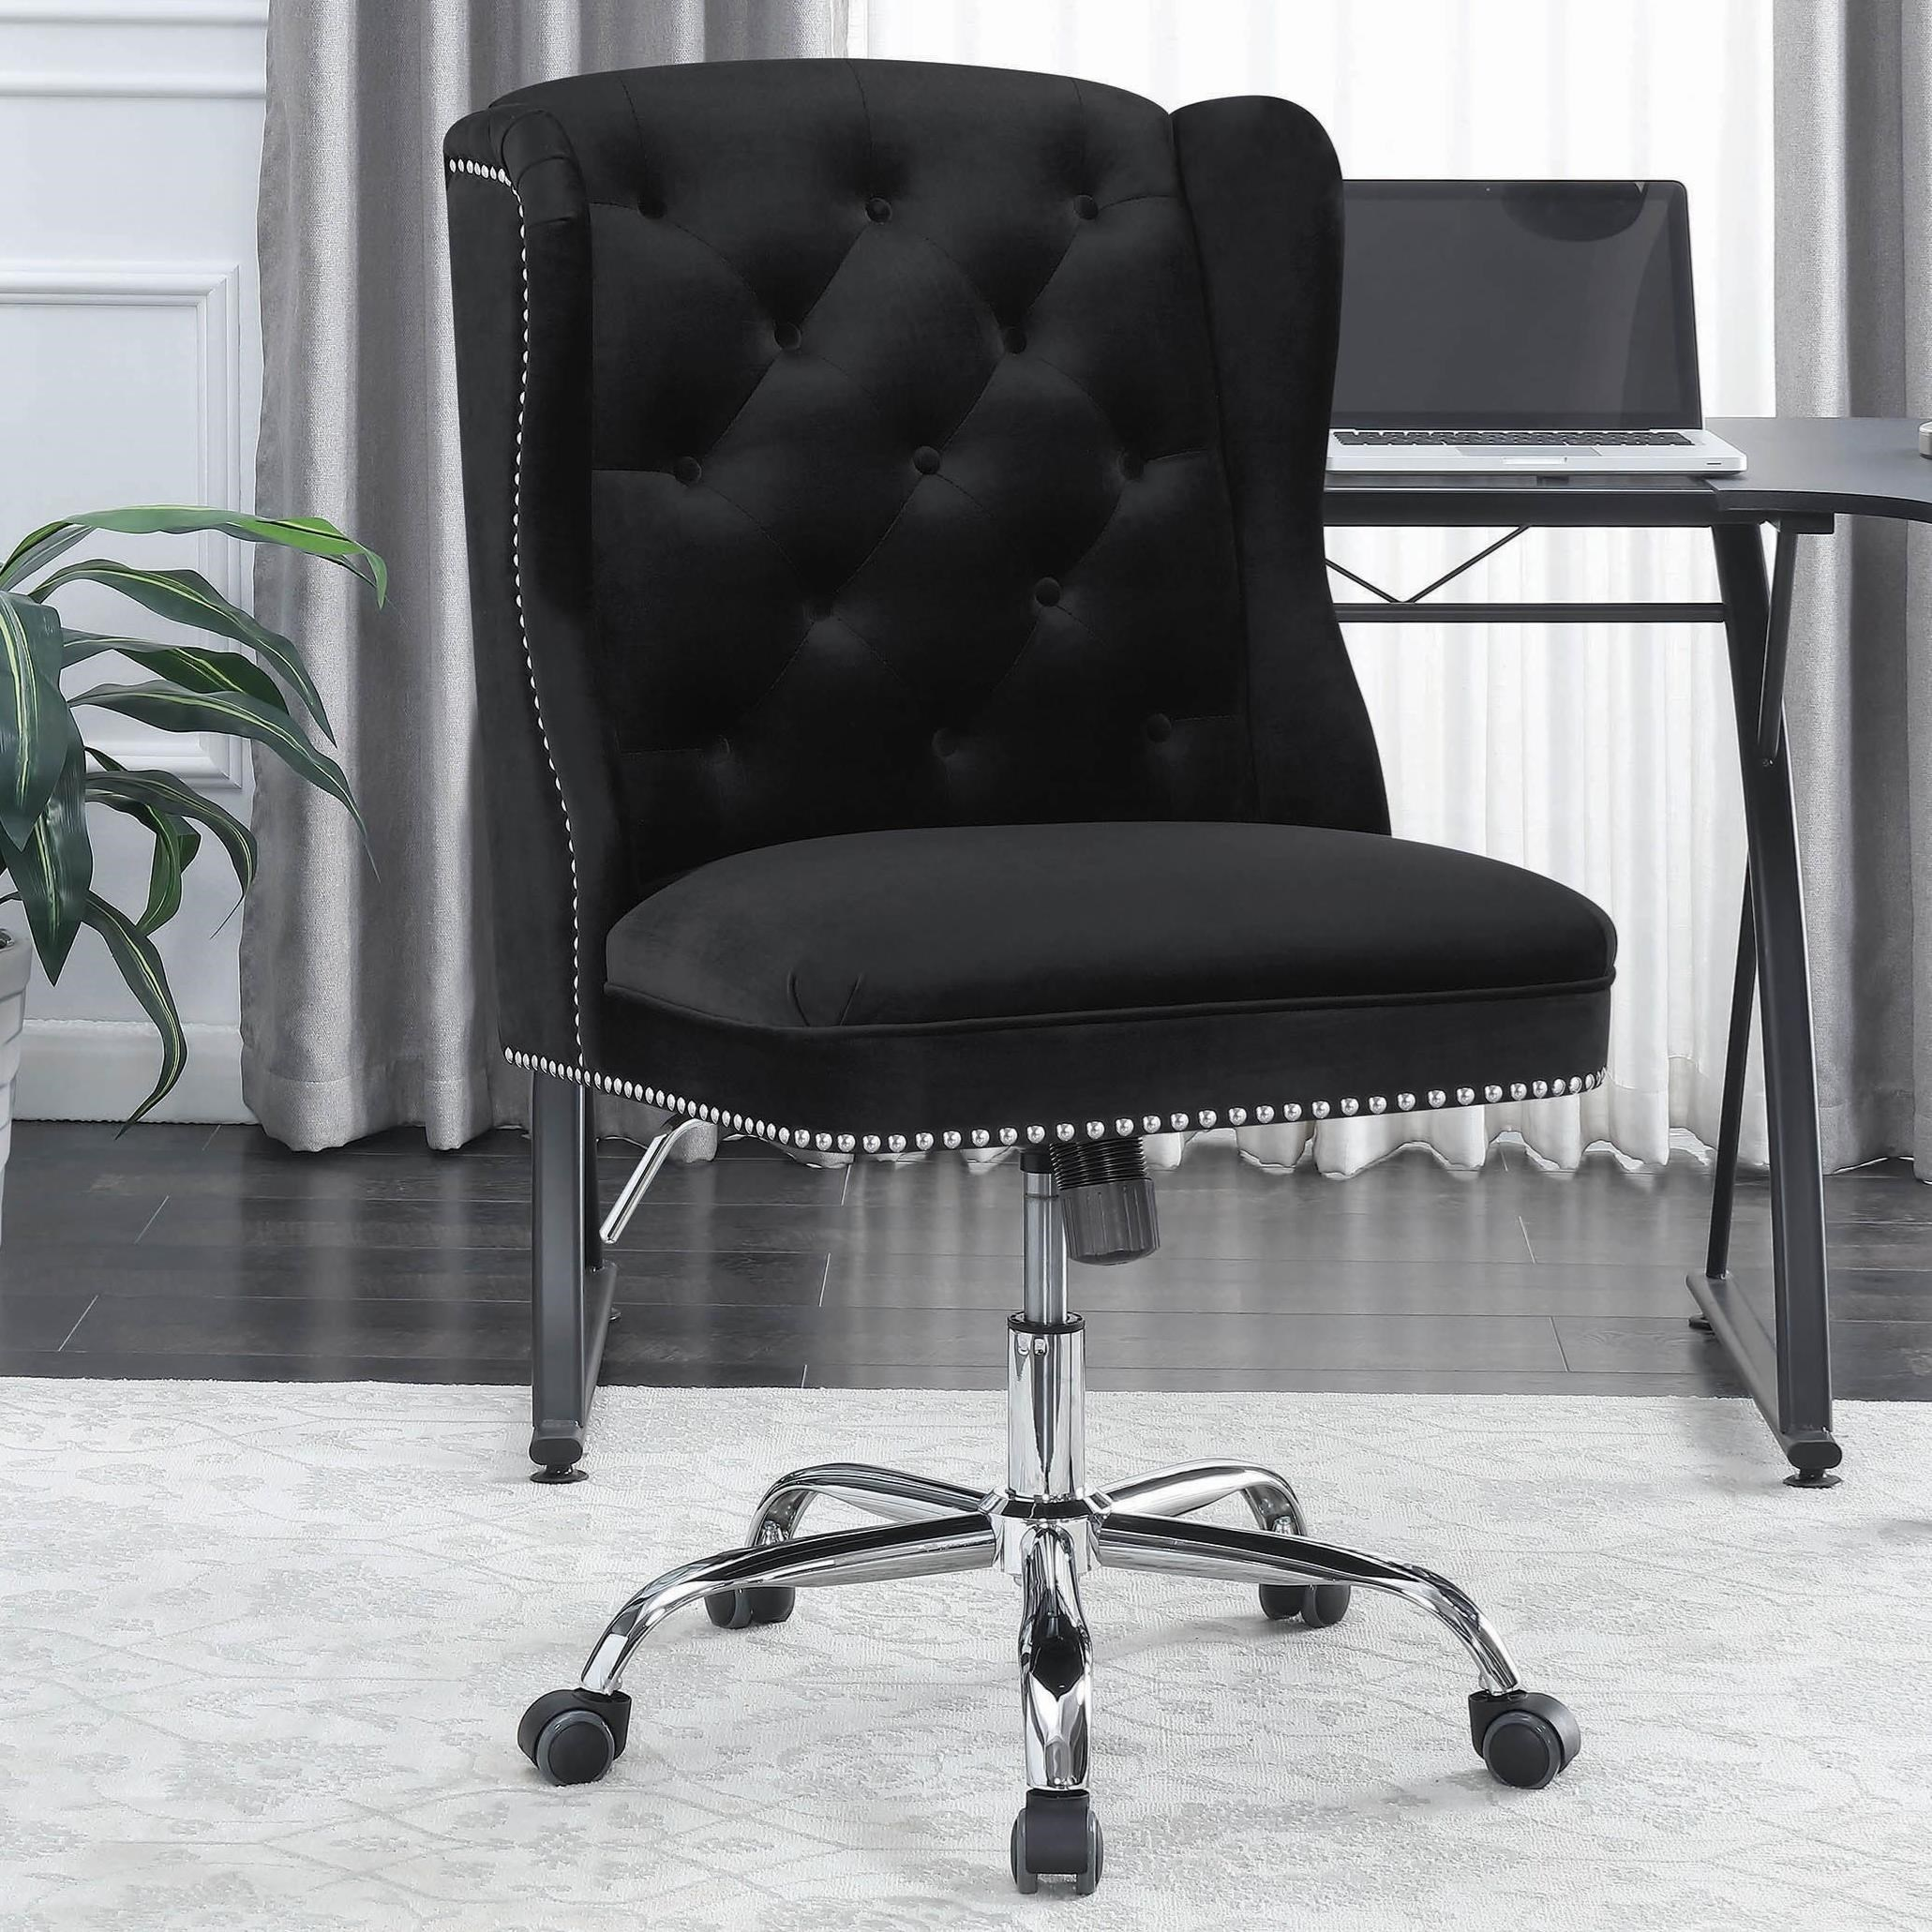 Wingback Tufted Chair Office Chairs Wingback Office Chair With Tufted Back By Coaster At Dunk Bright Furniture